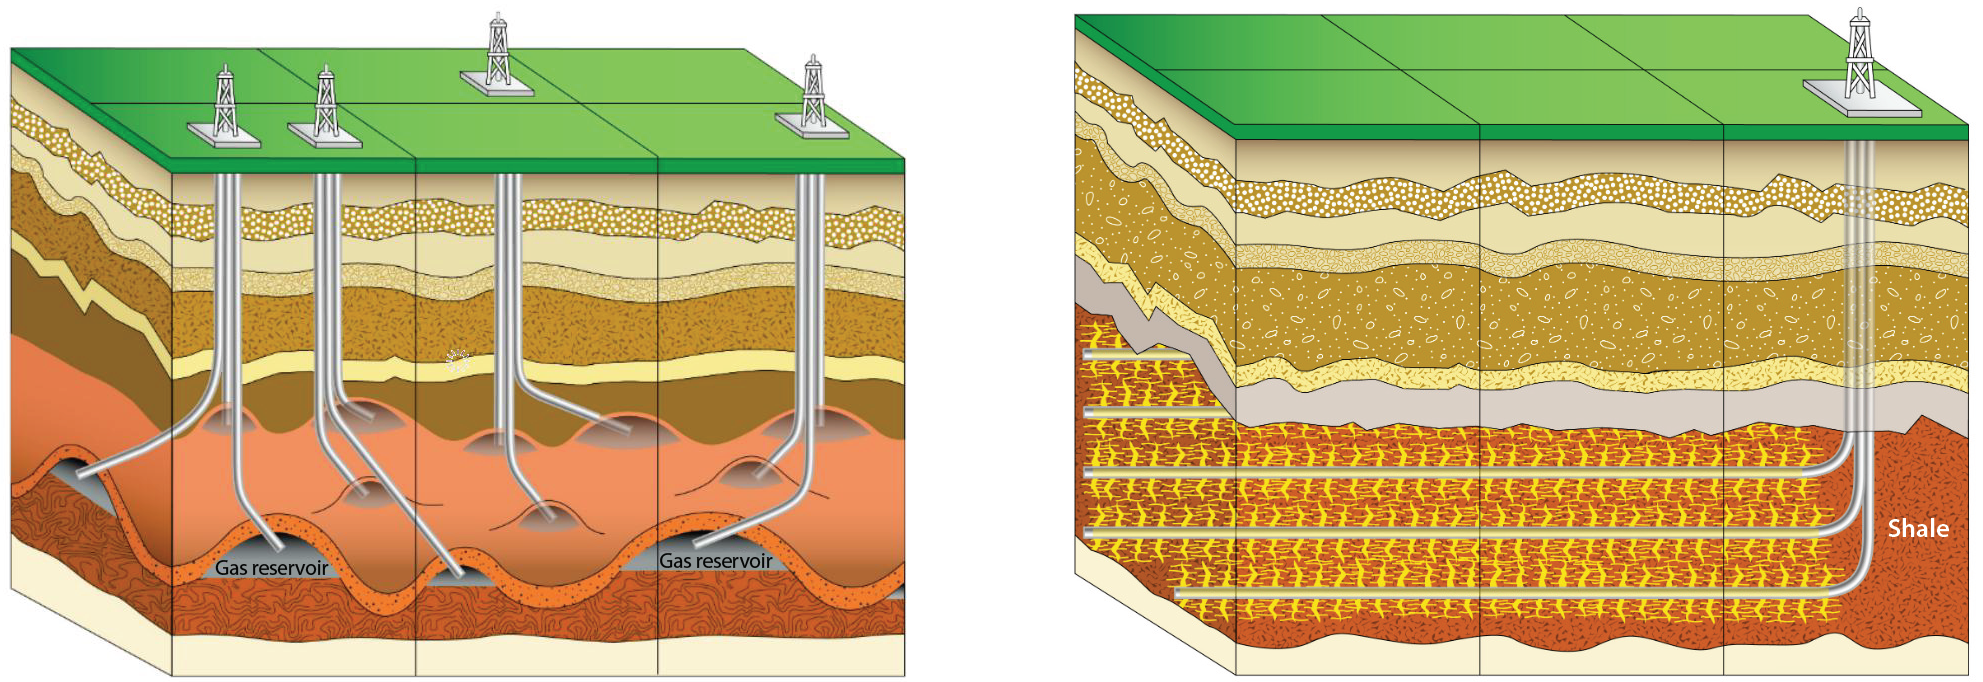 Schematics showing how multiple wells can be drilled in different angles and directions from a single site, reducing land use.